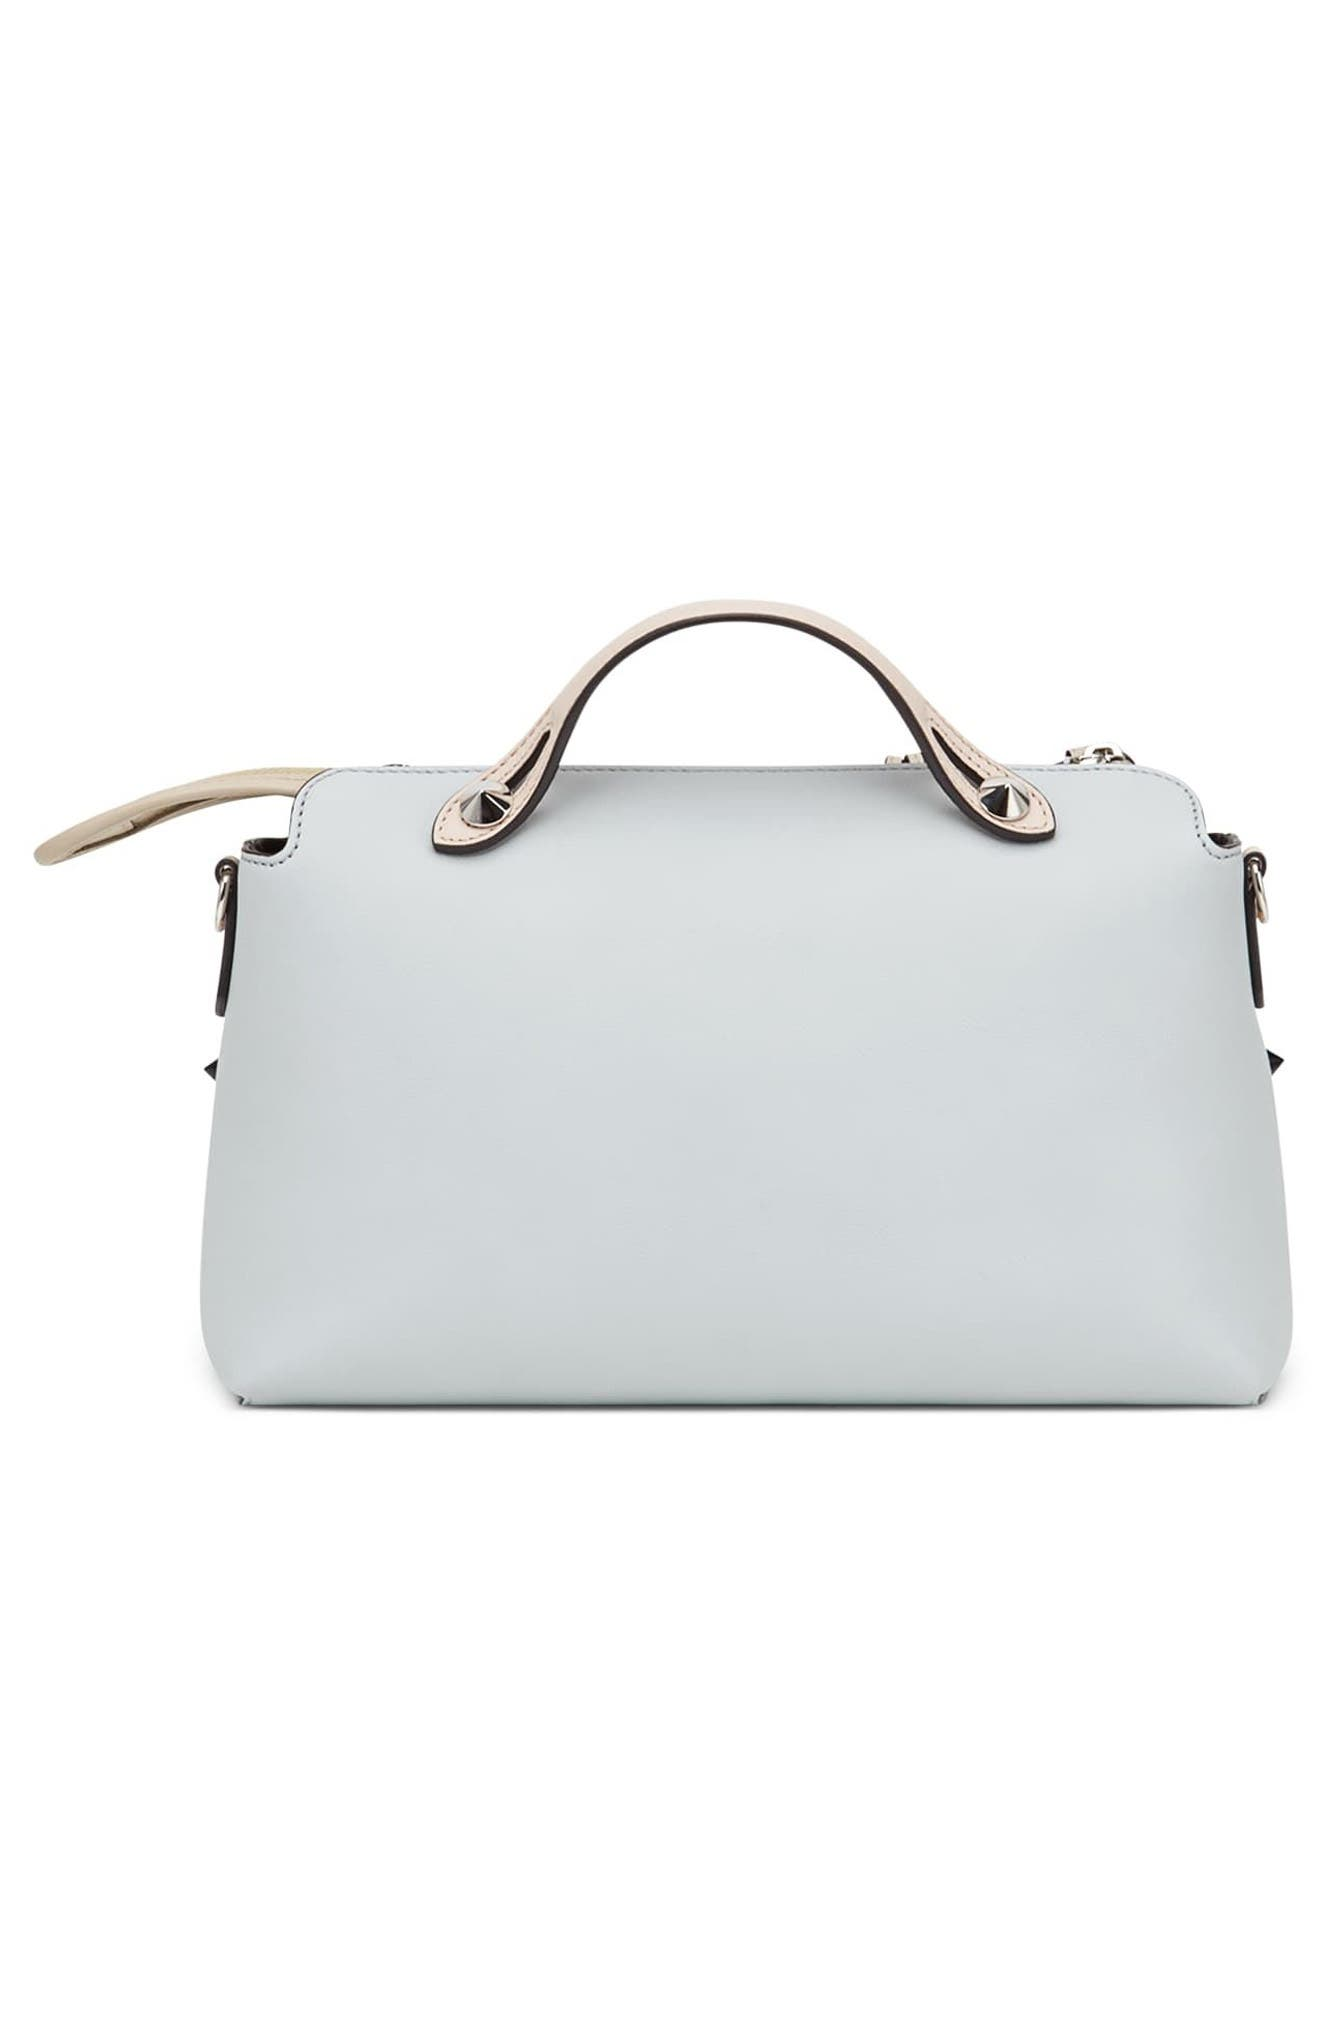 By the Way - Monster Eyes Leather Shoulder Bag,                             Alternate thumbnail 2, color,                             052